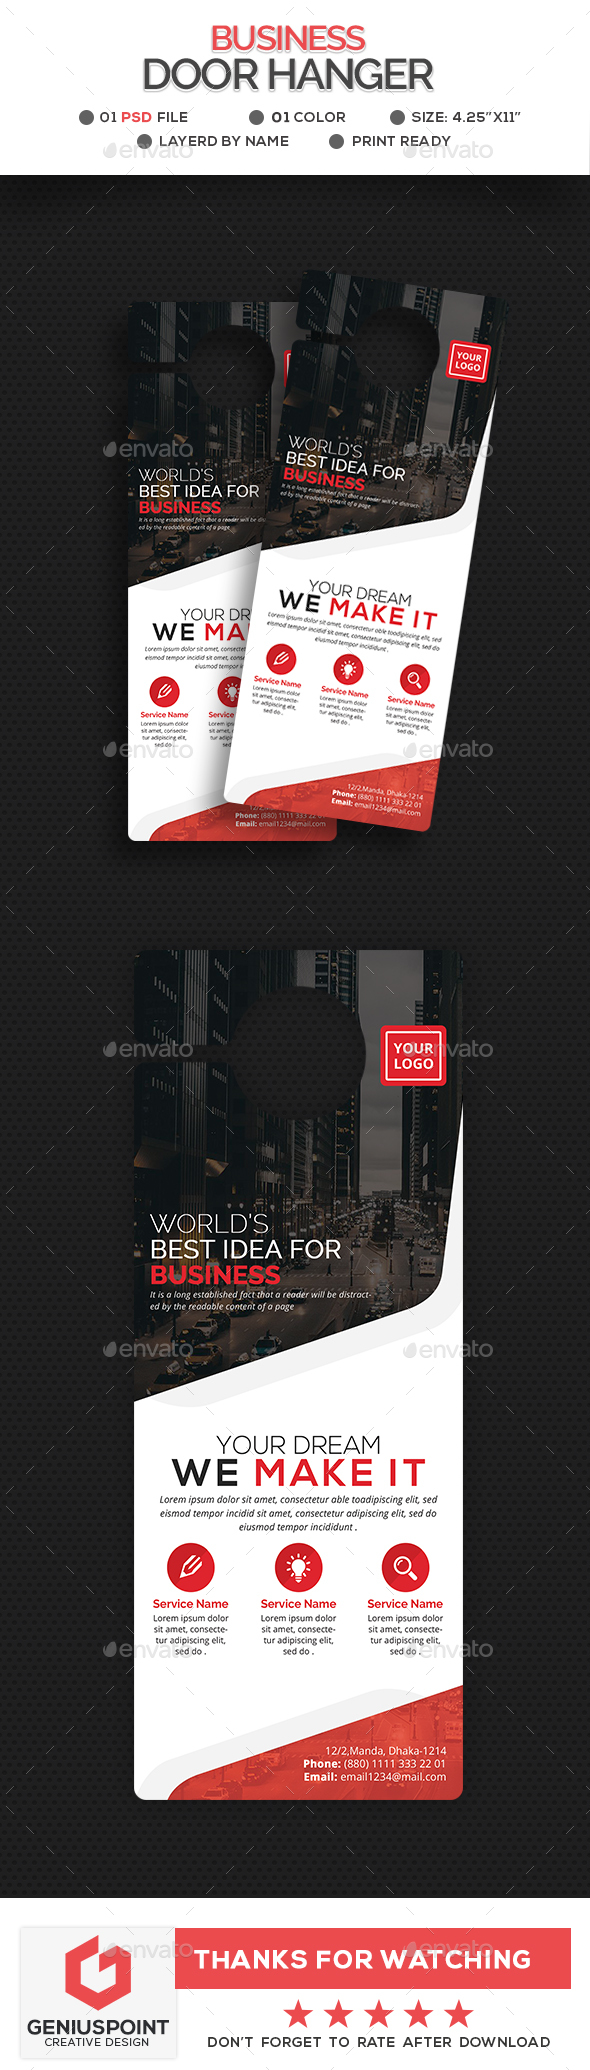 Business Door Hanger Template - Miscellaneous Print Templates